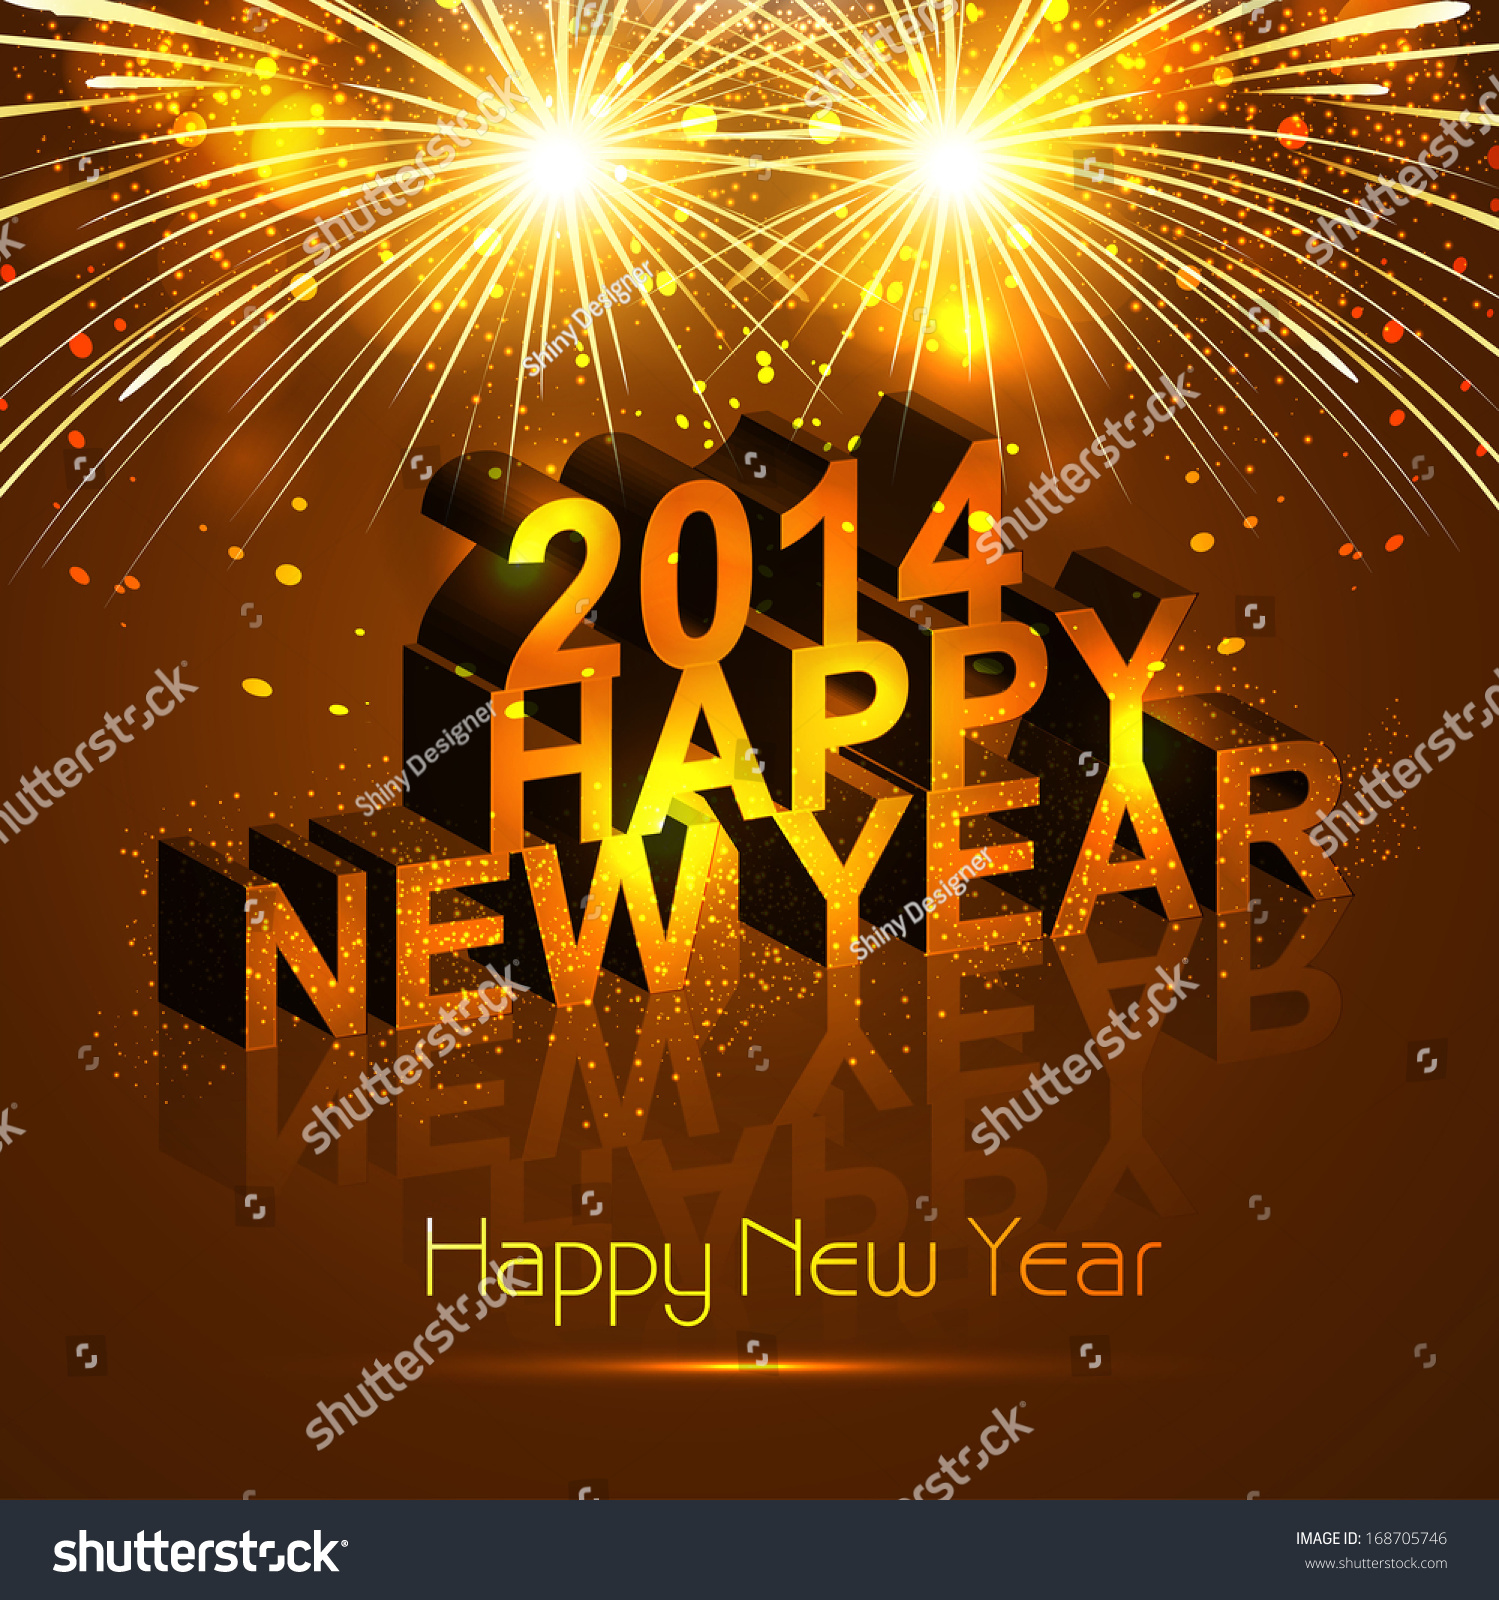 New Year 2014 Reflection Celebration Colorful Stock Vector (Royalty ...